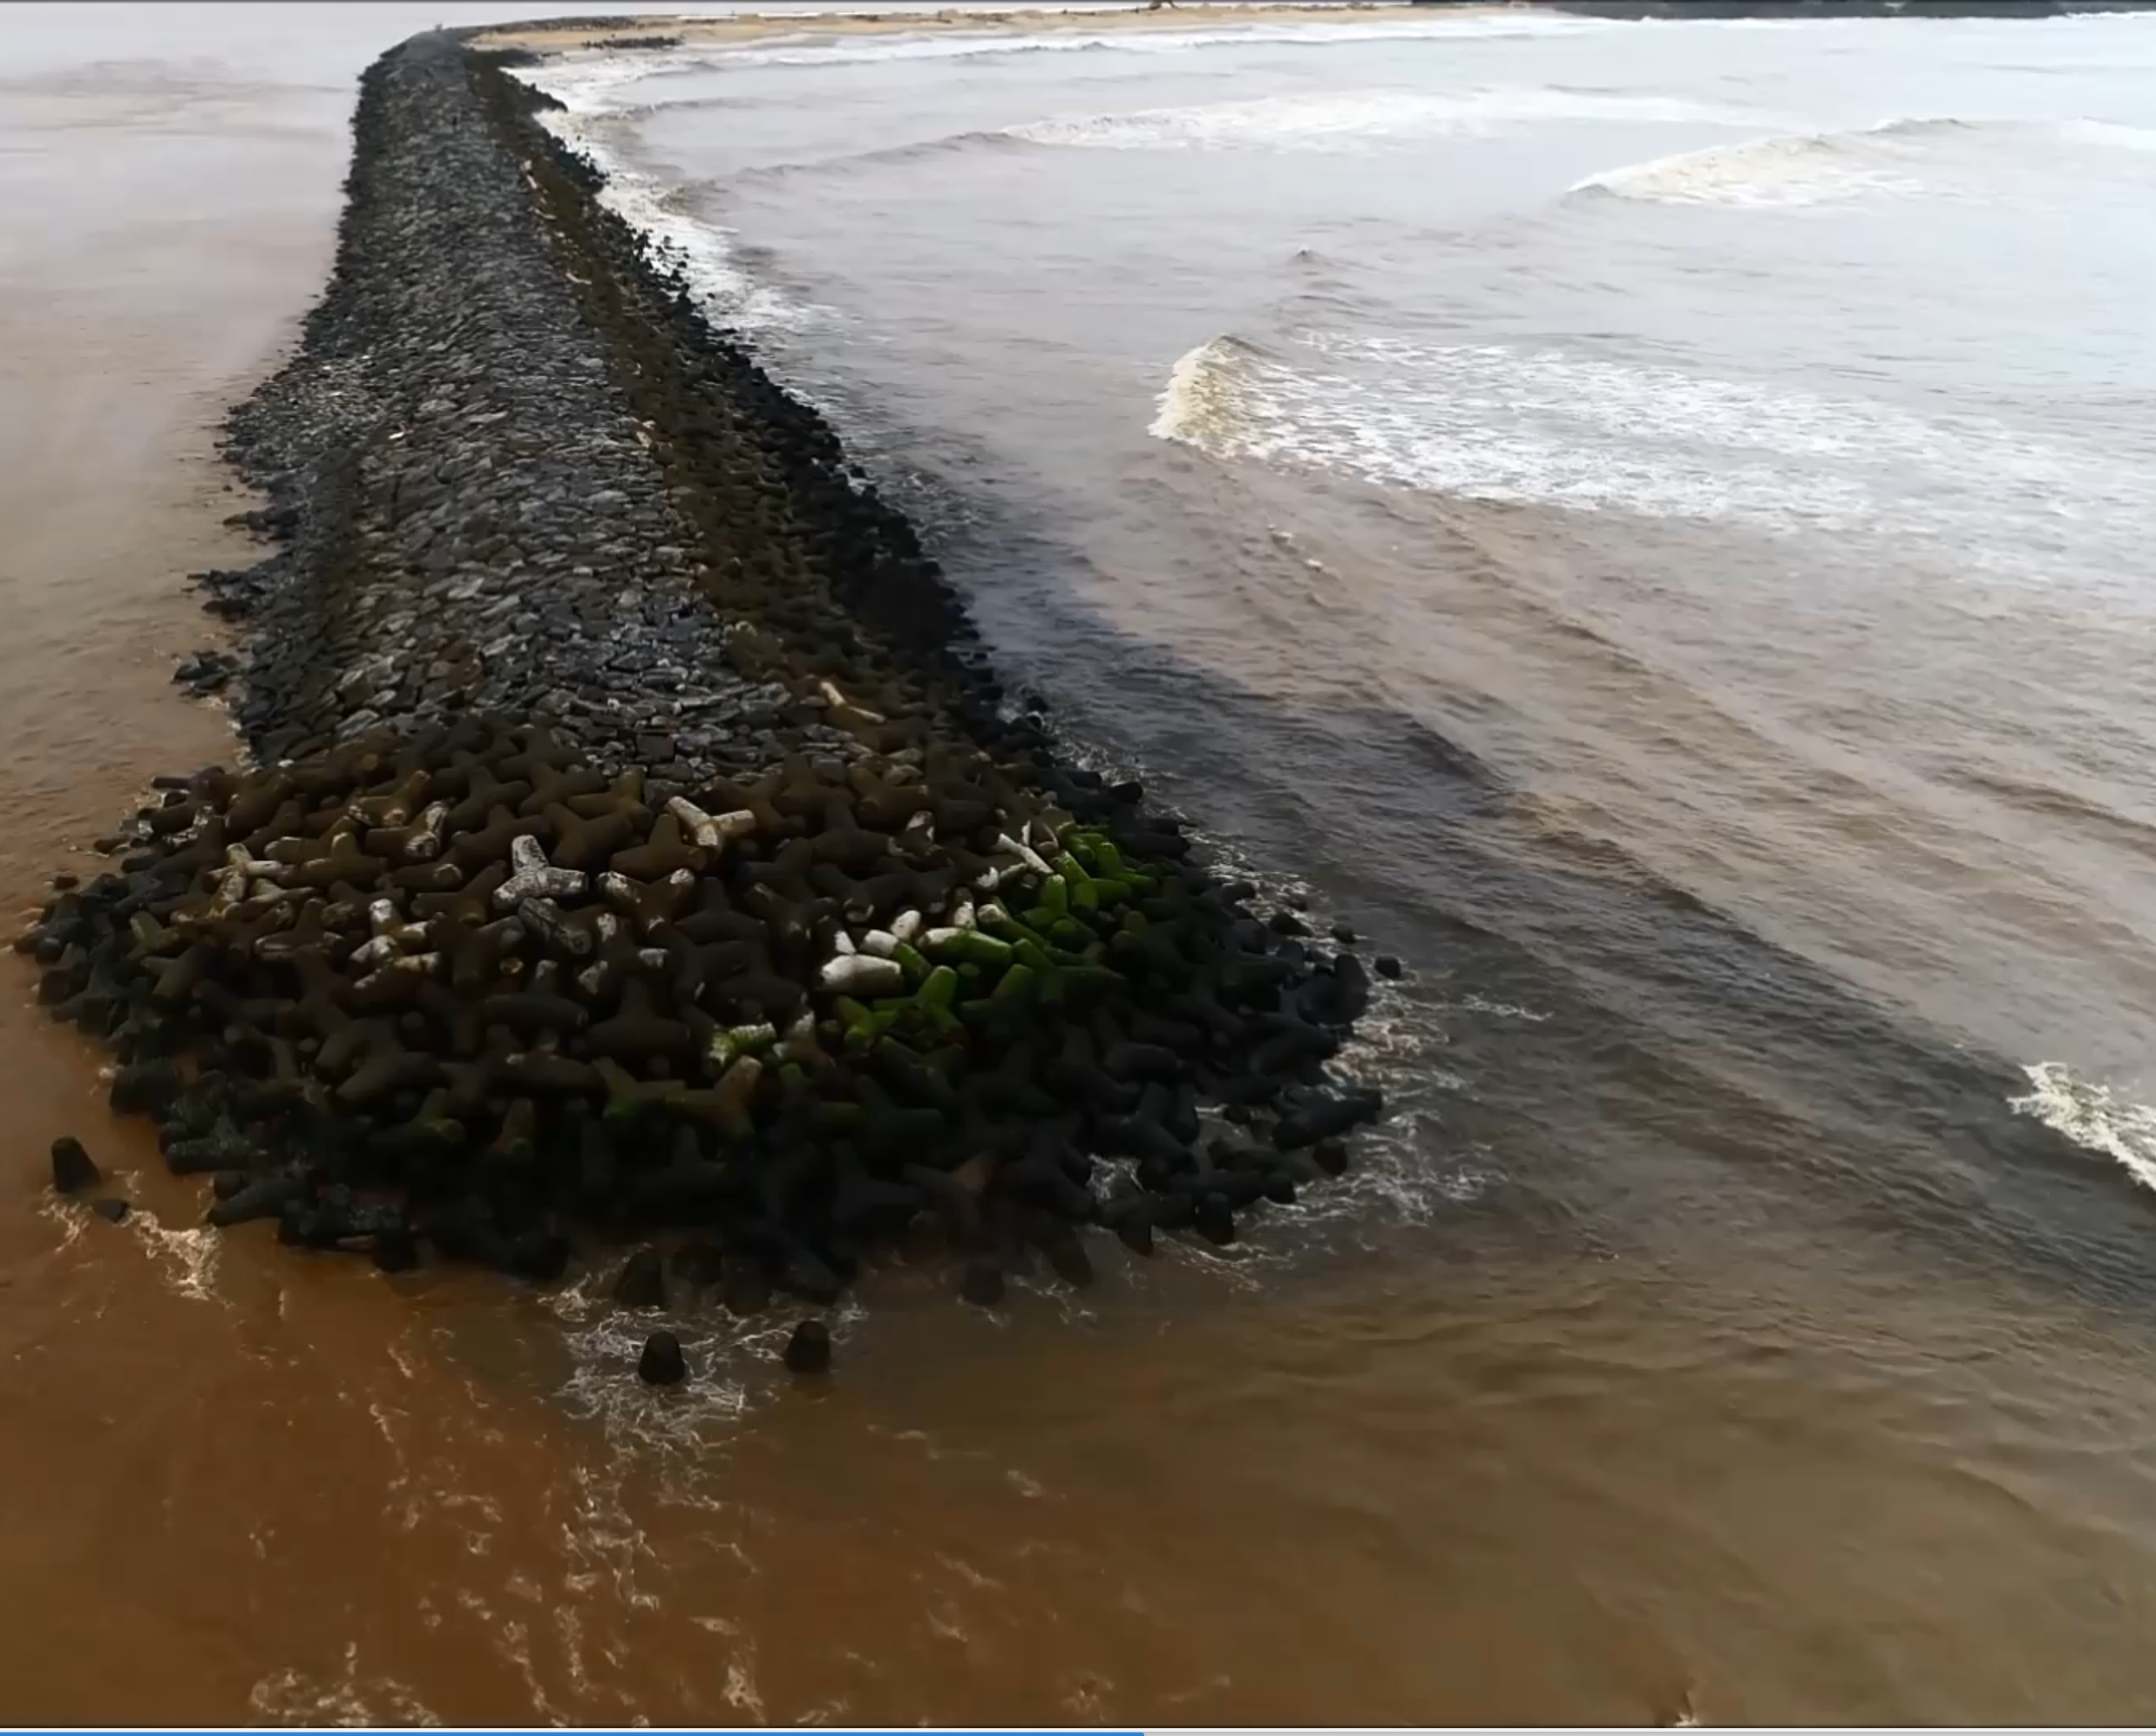 The world's largest man-made reef is now protecting the Indian city of Ullal from coastal erosion